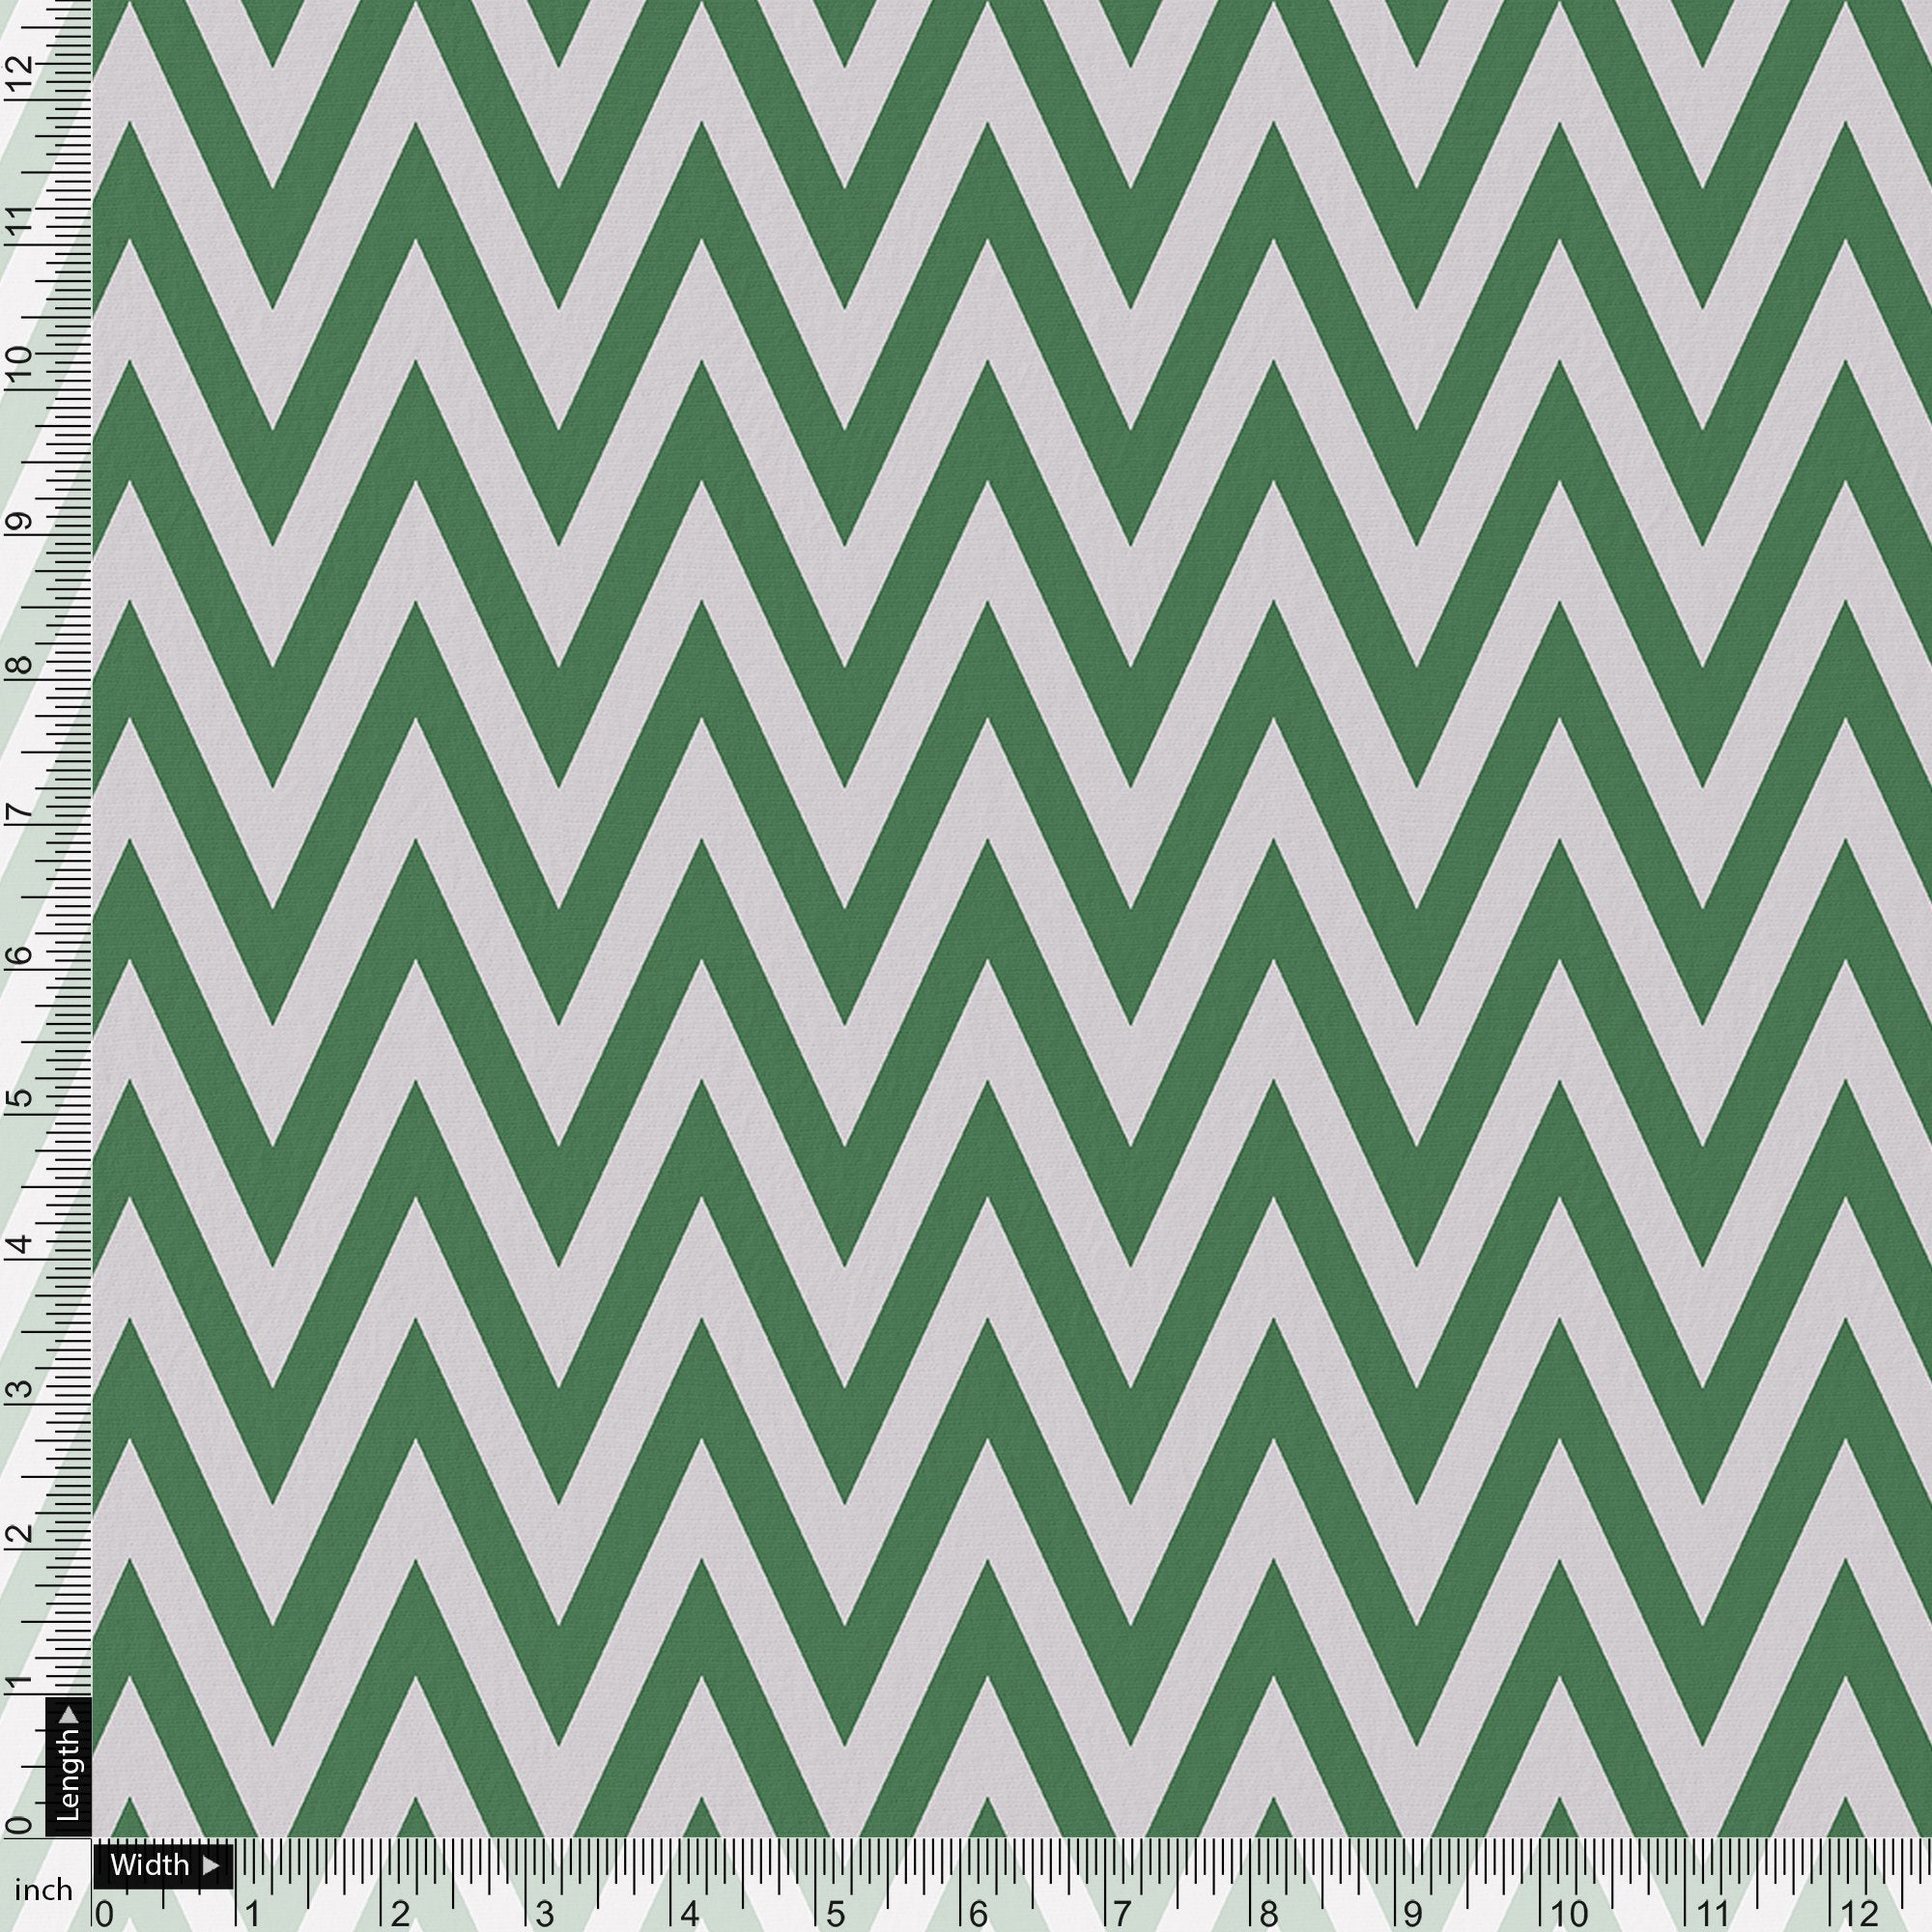 Green Chevron Pattern Digital Printed Fabric - FAB VOGUE Studio. Shop Fabric @ www.fabvoguestudio.com